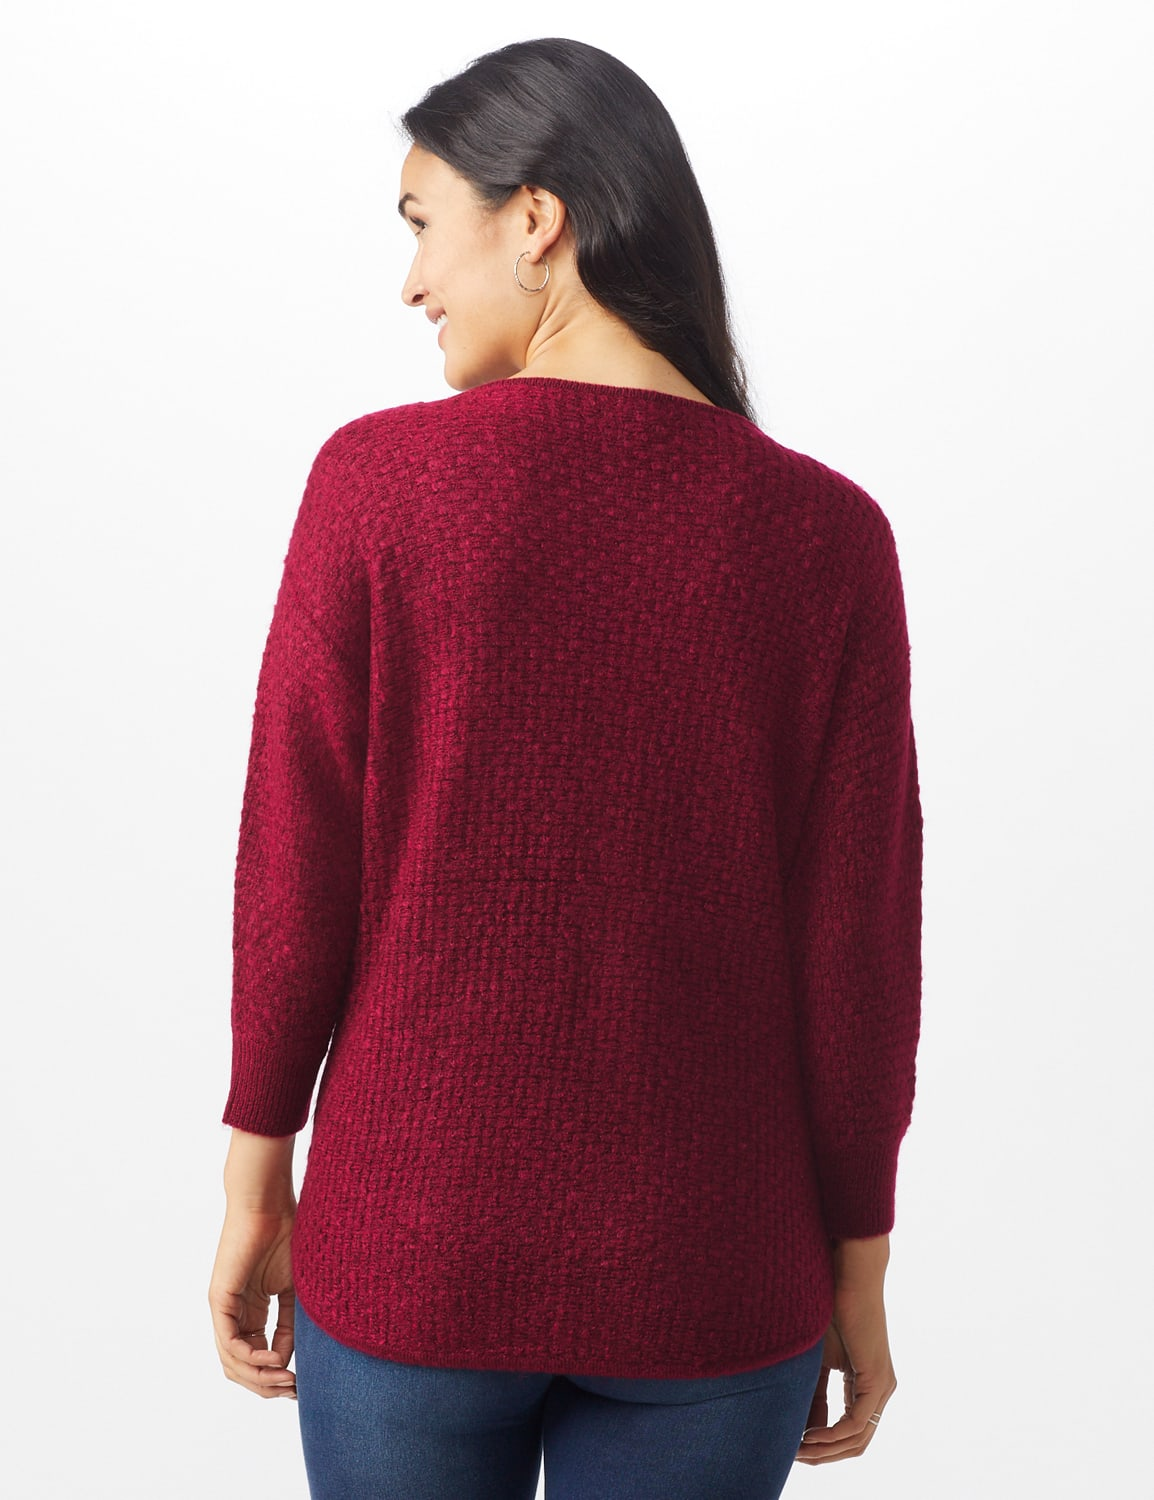 Westport Basketweave Stitch Curved Hem Sweater - Misses - Red - Back